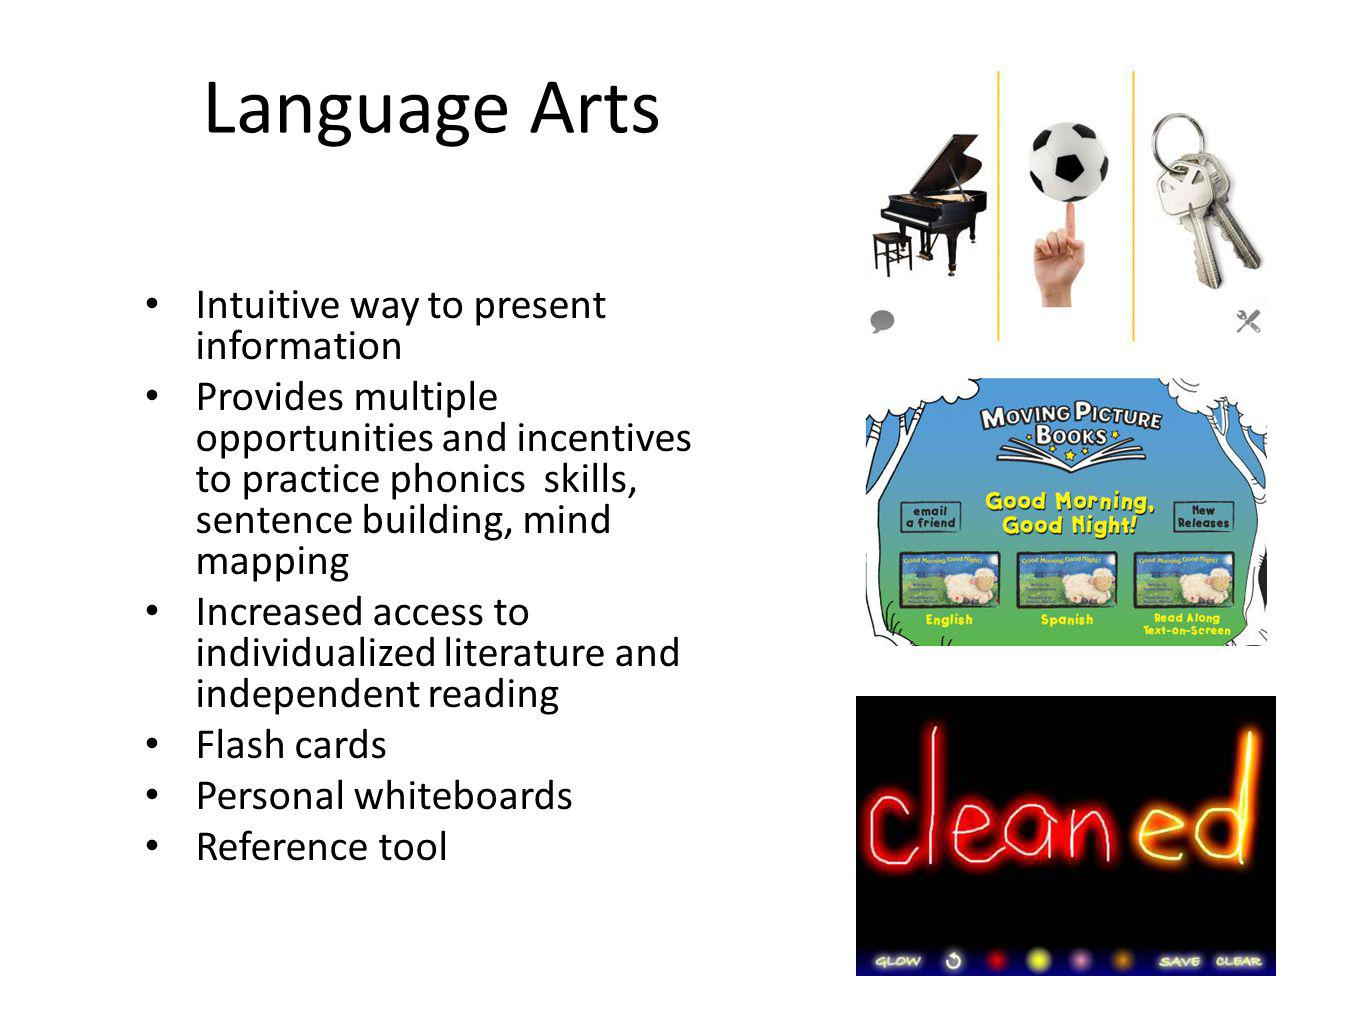 Language Arts Intuitive way to present information Provides multiple opportunities and incentives to practice phonics skills, sentence building, mind mapping Increased access to individualized literature and independent reading Flash cards Personal whiteboards Reference tool